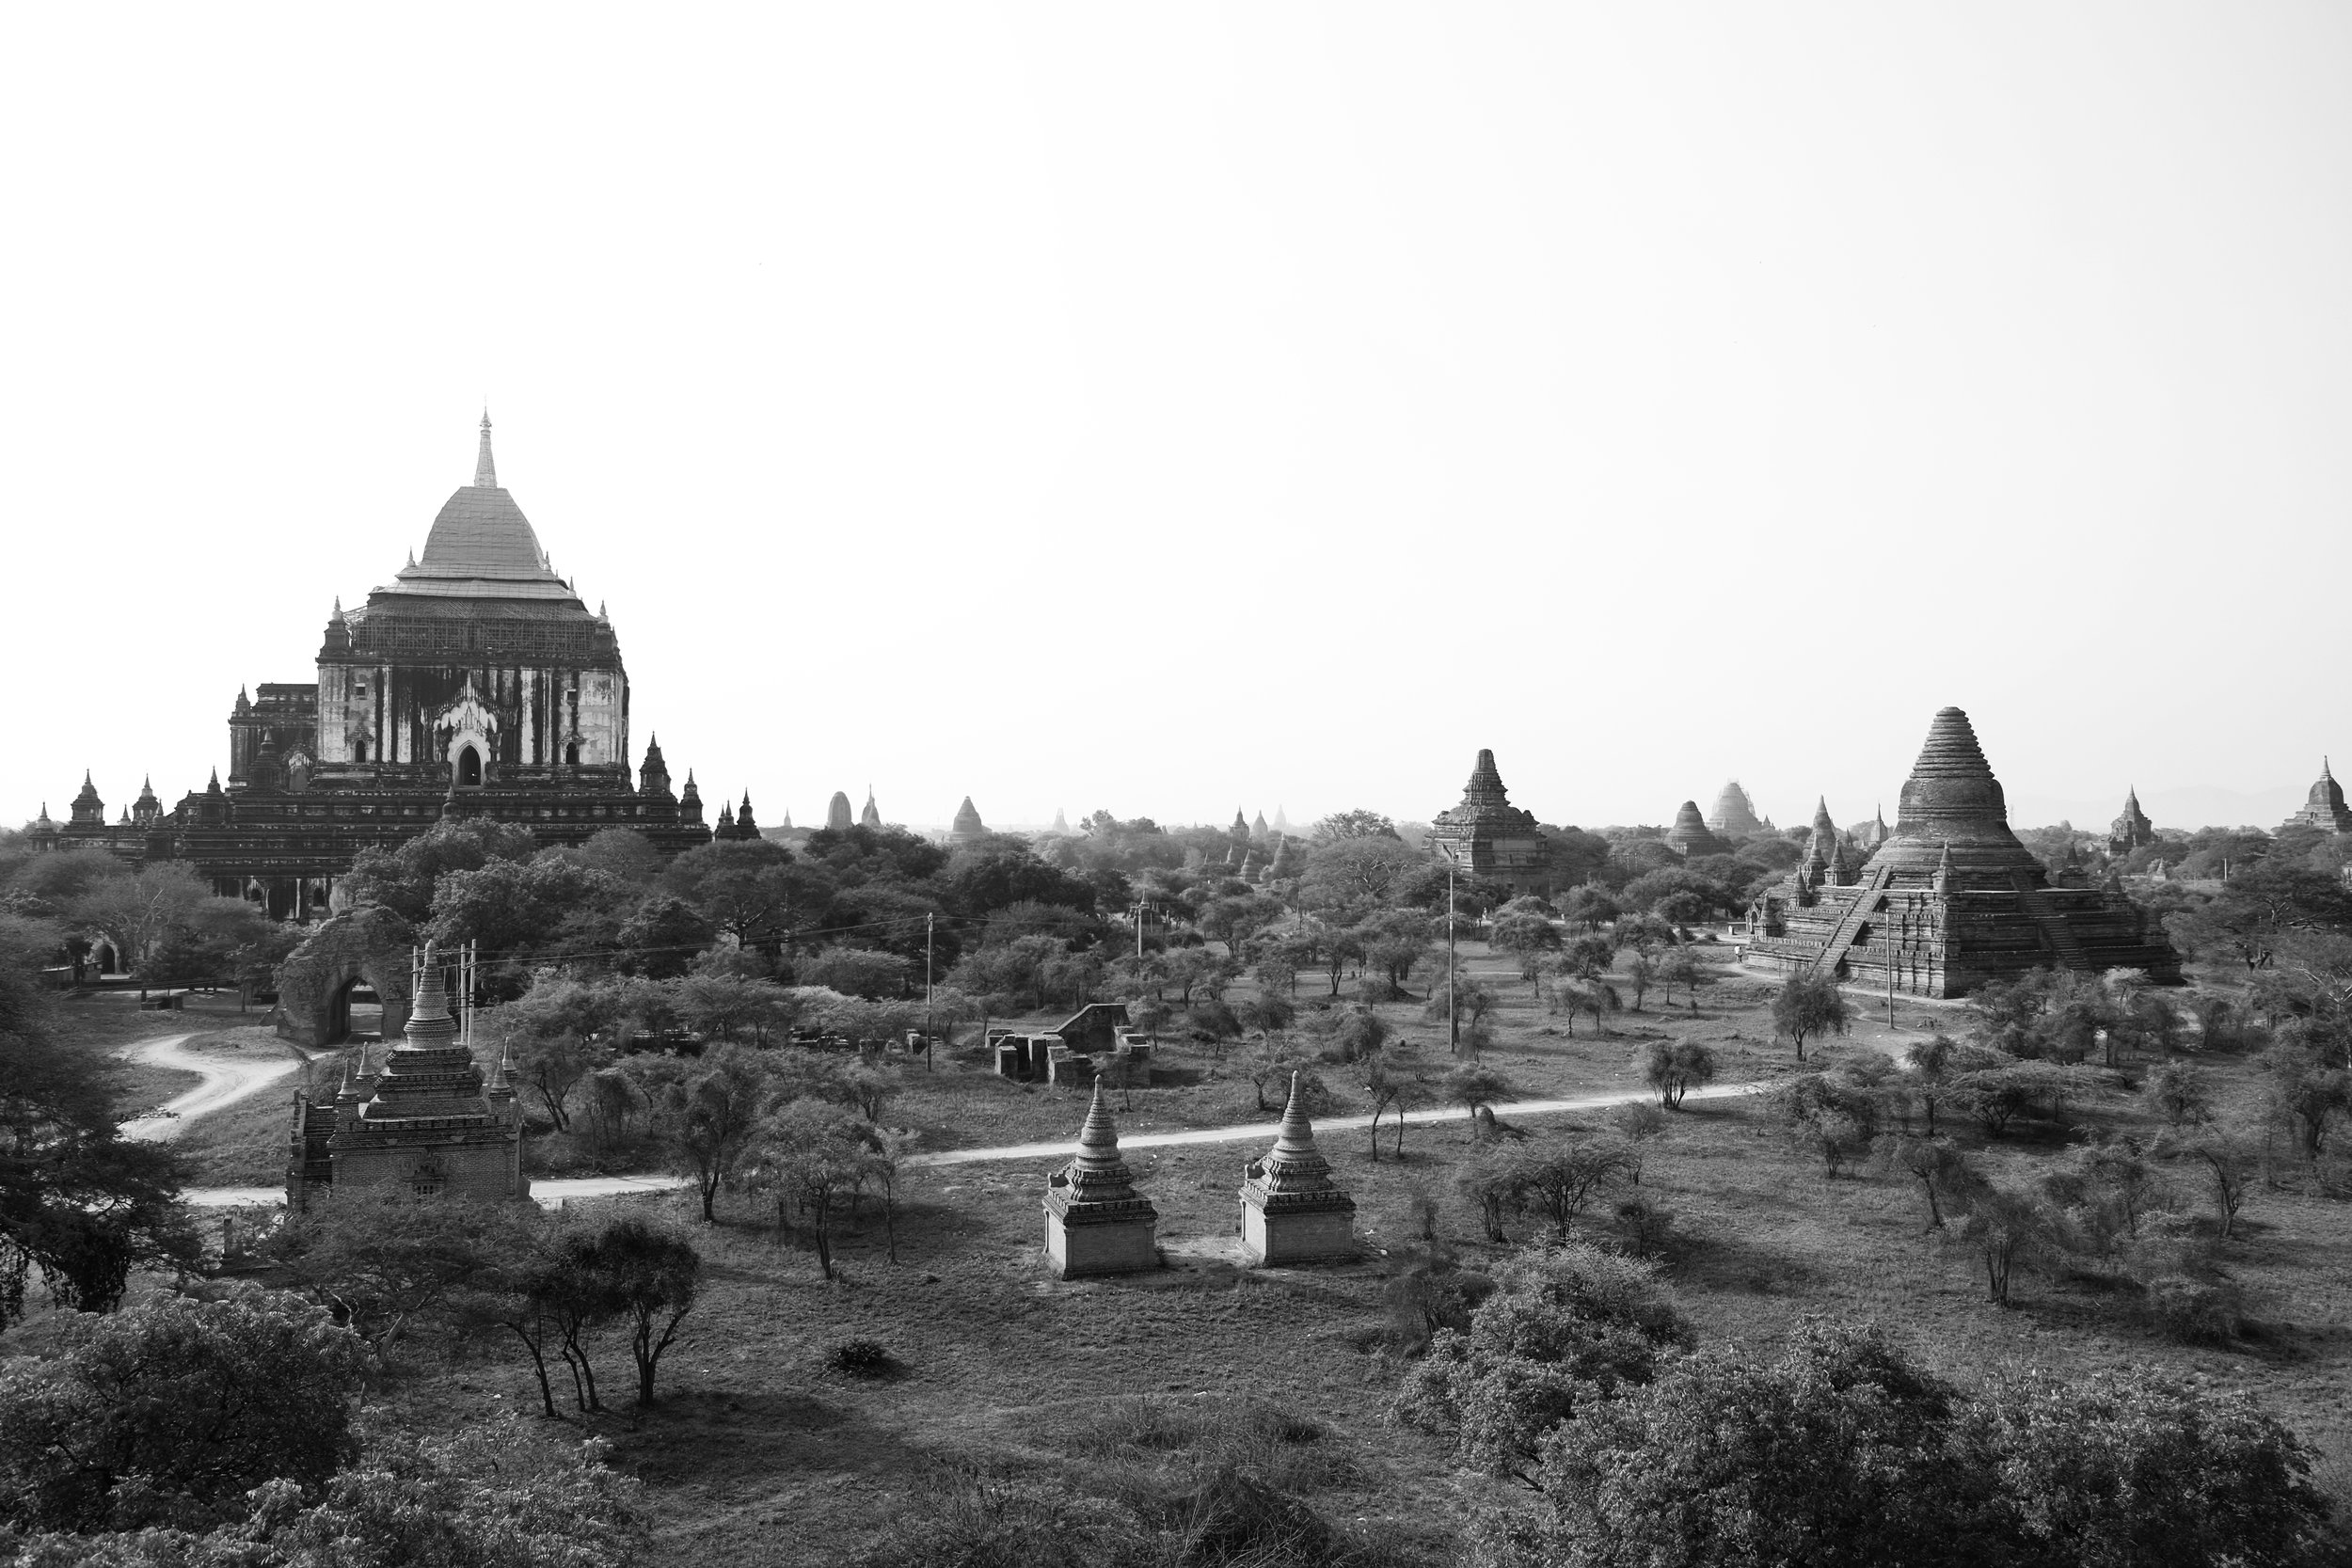 Fields of temples, Bagan